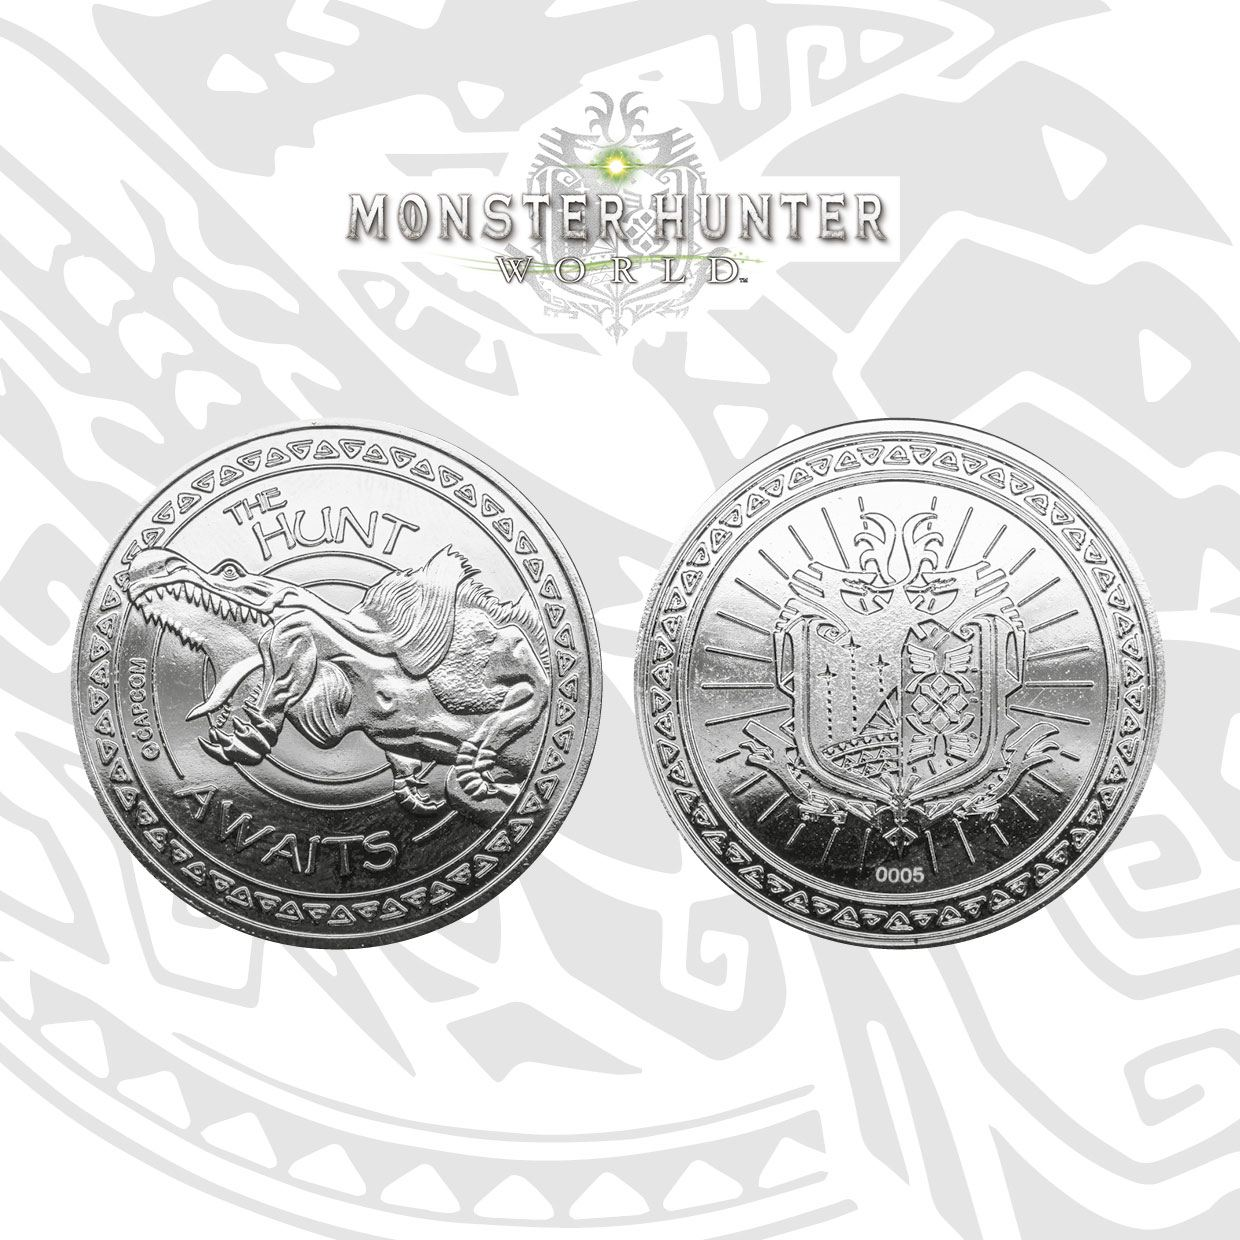 Monster Hunter Collectable Coin The Hunt Awaits Silver Edition